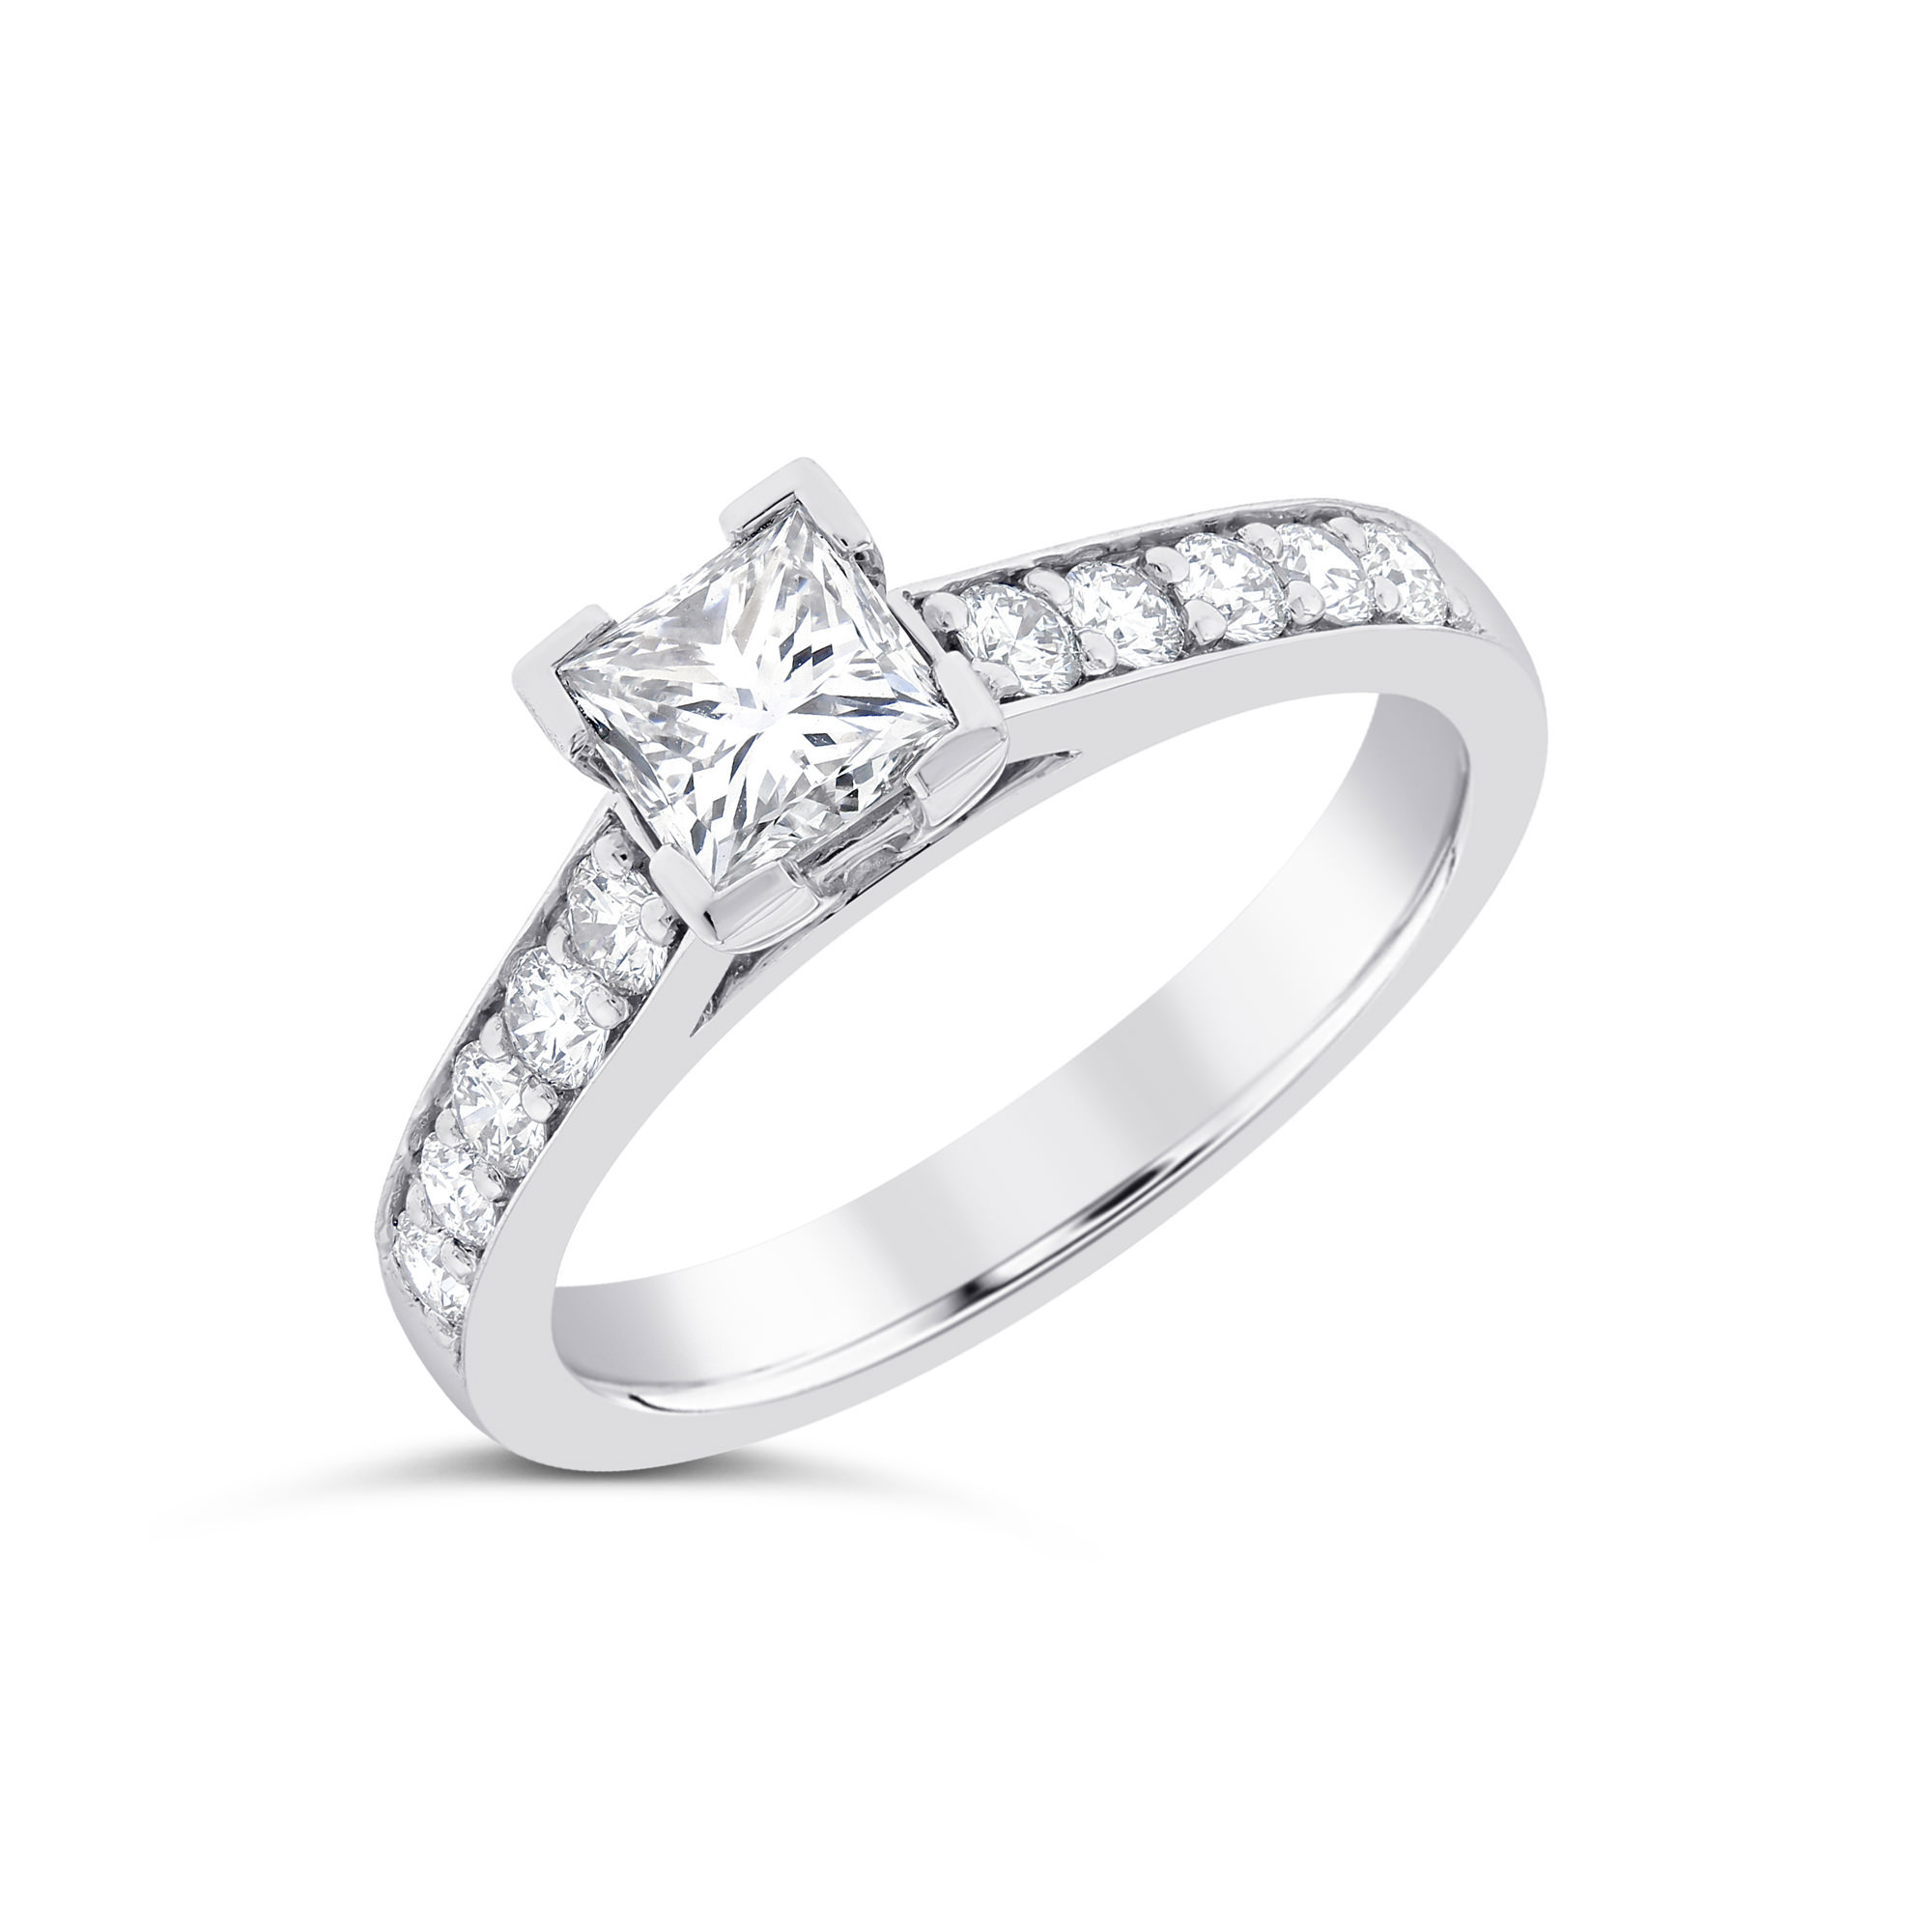 Princess Cut Platinum Diamond Ring